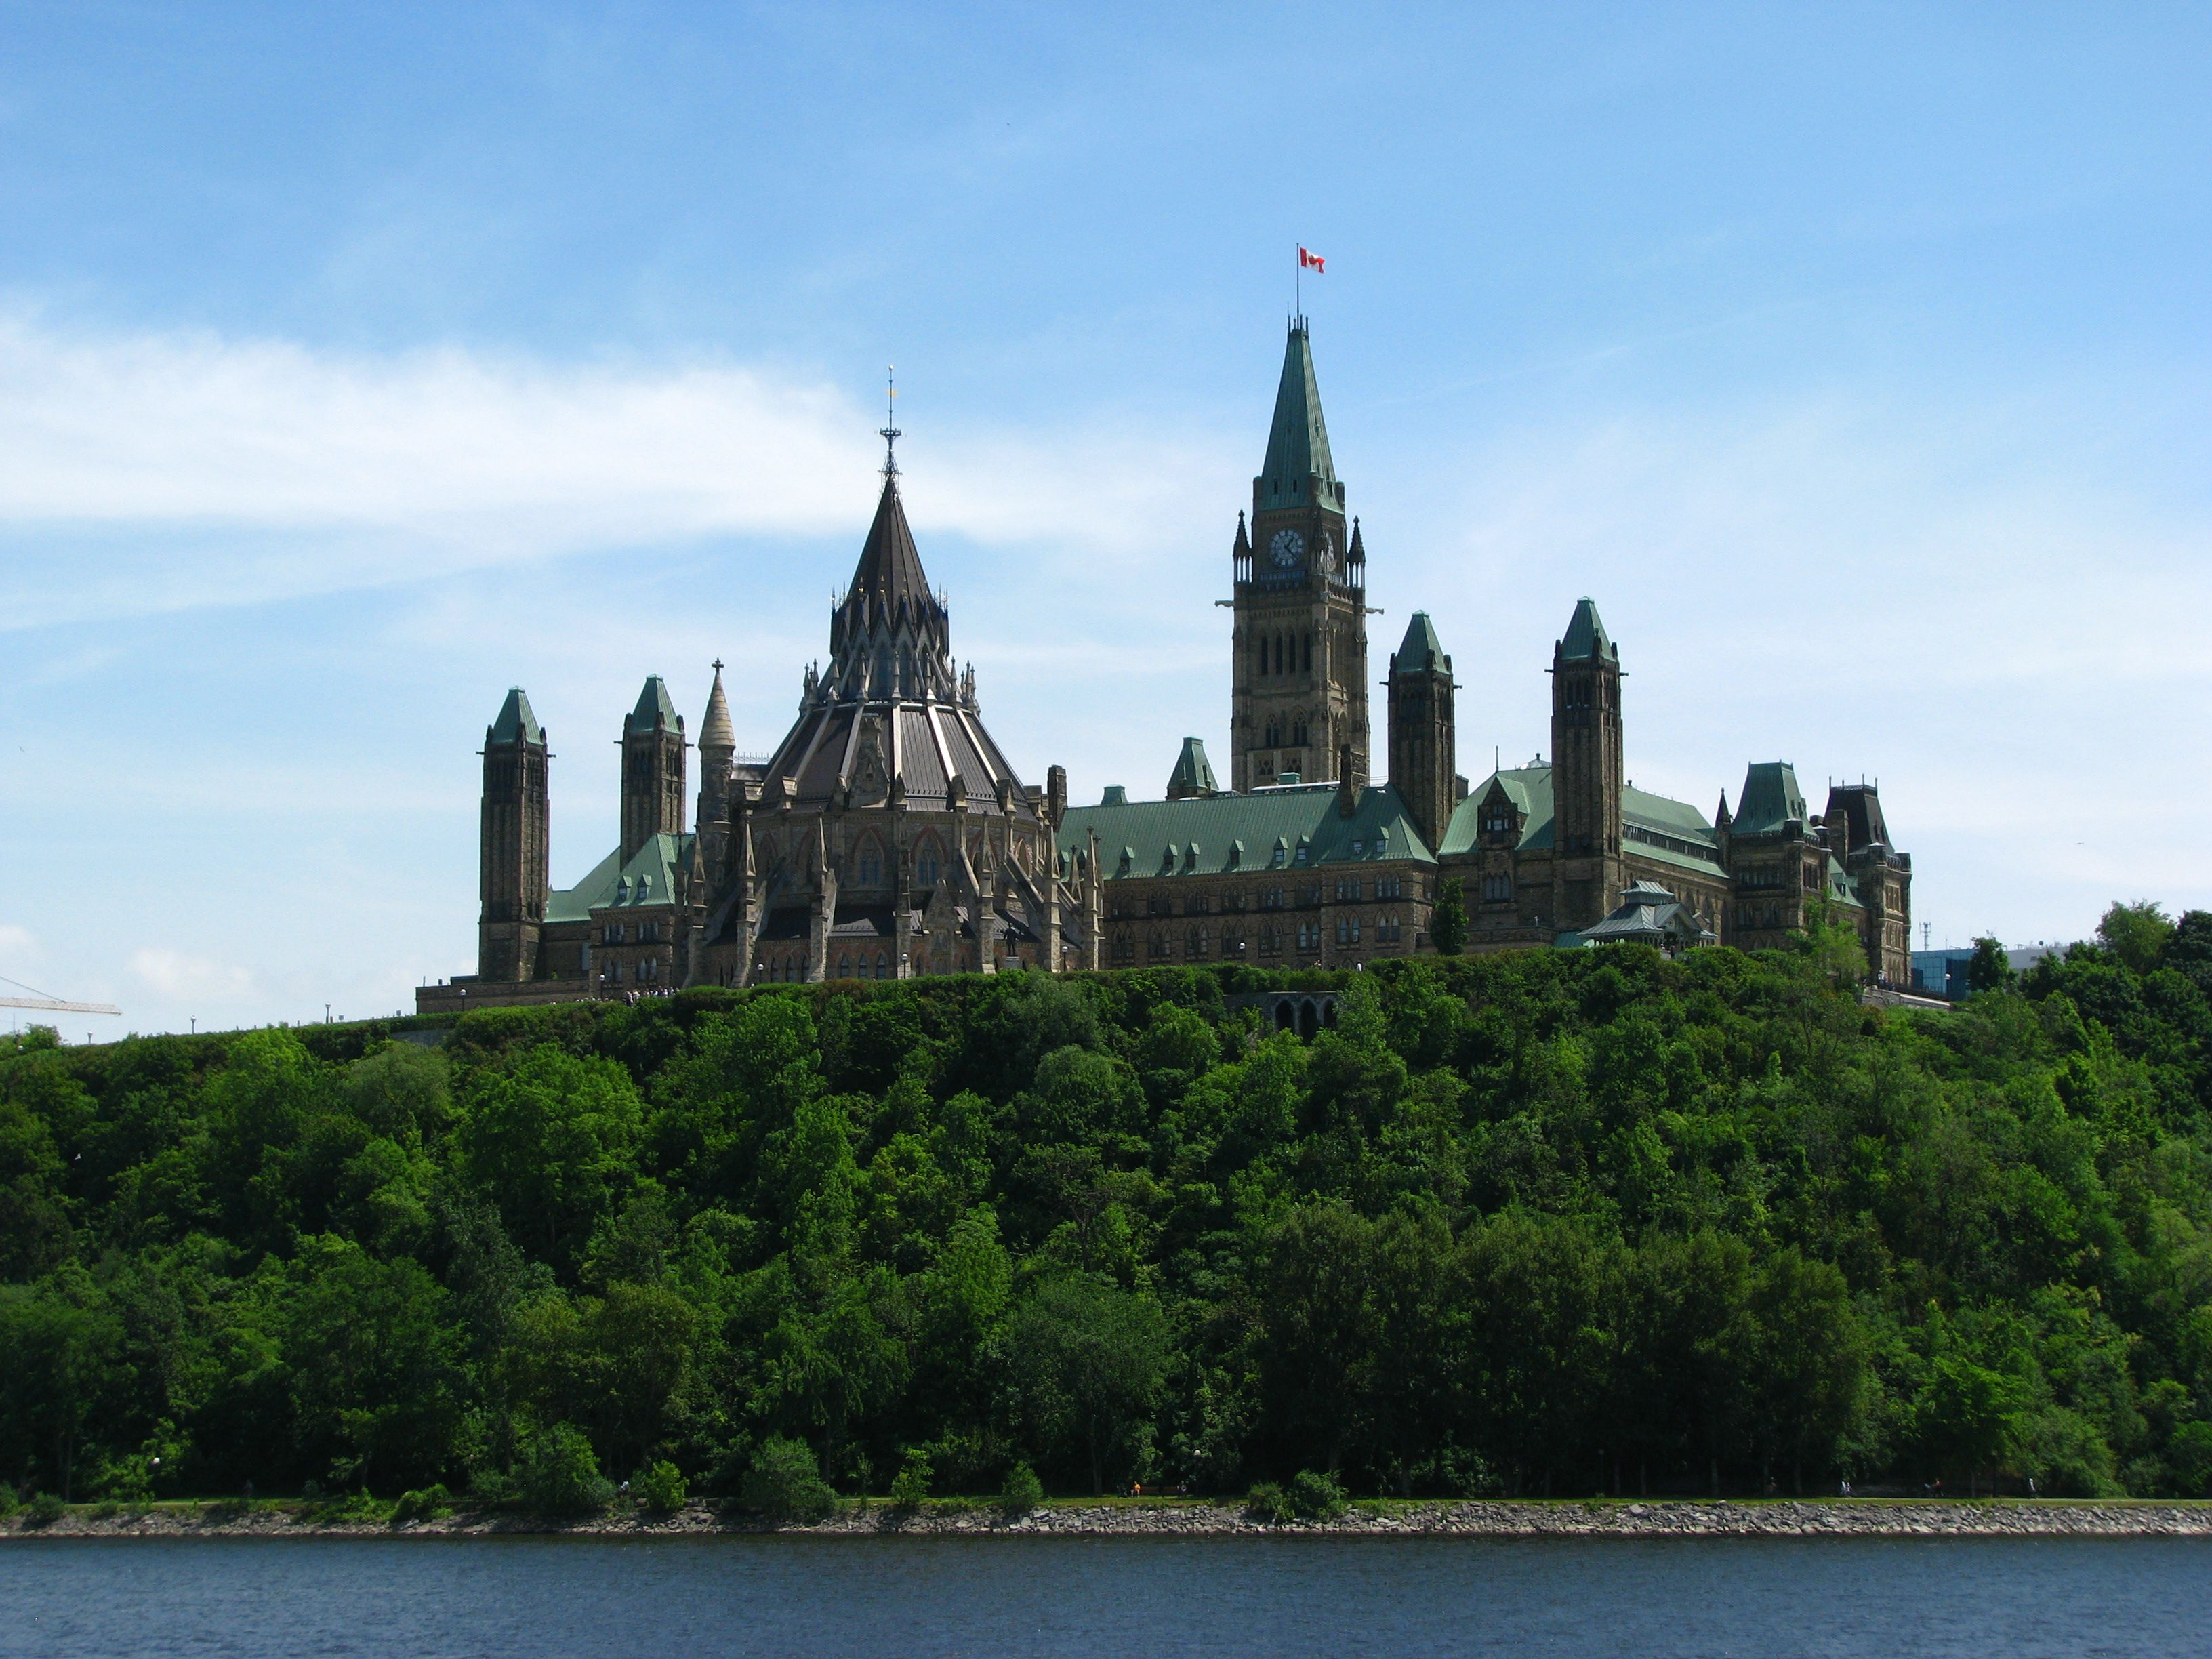 Parliament Hill, the seat of Canadian government, on the banks of the Ottawa River